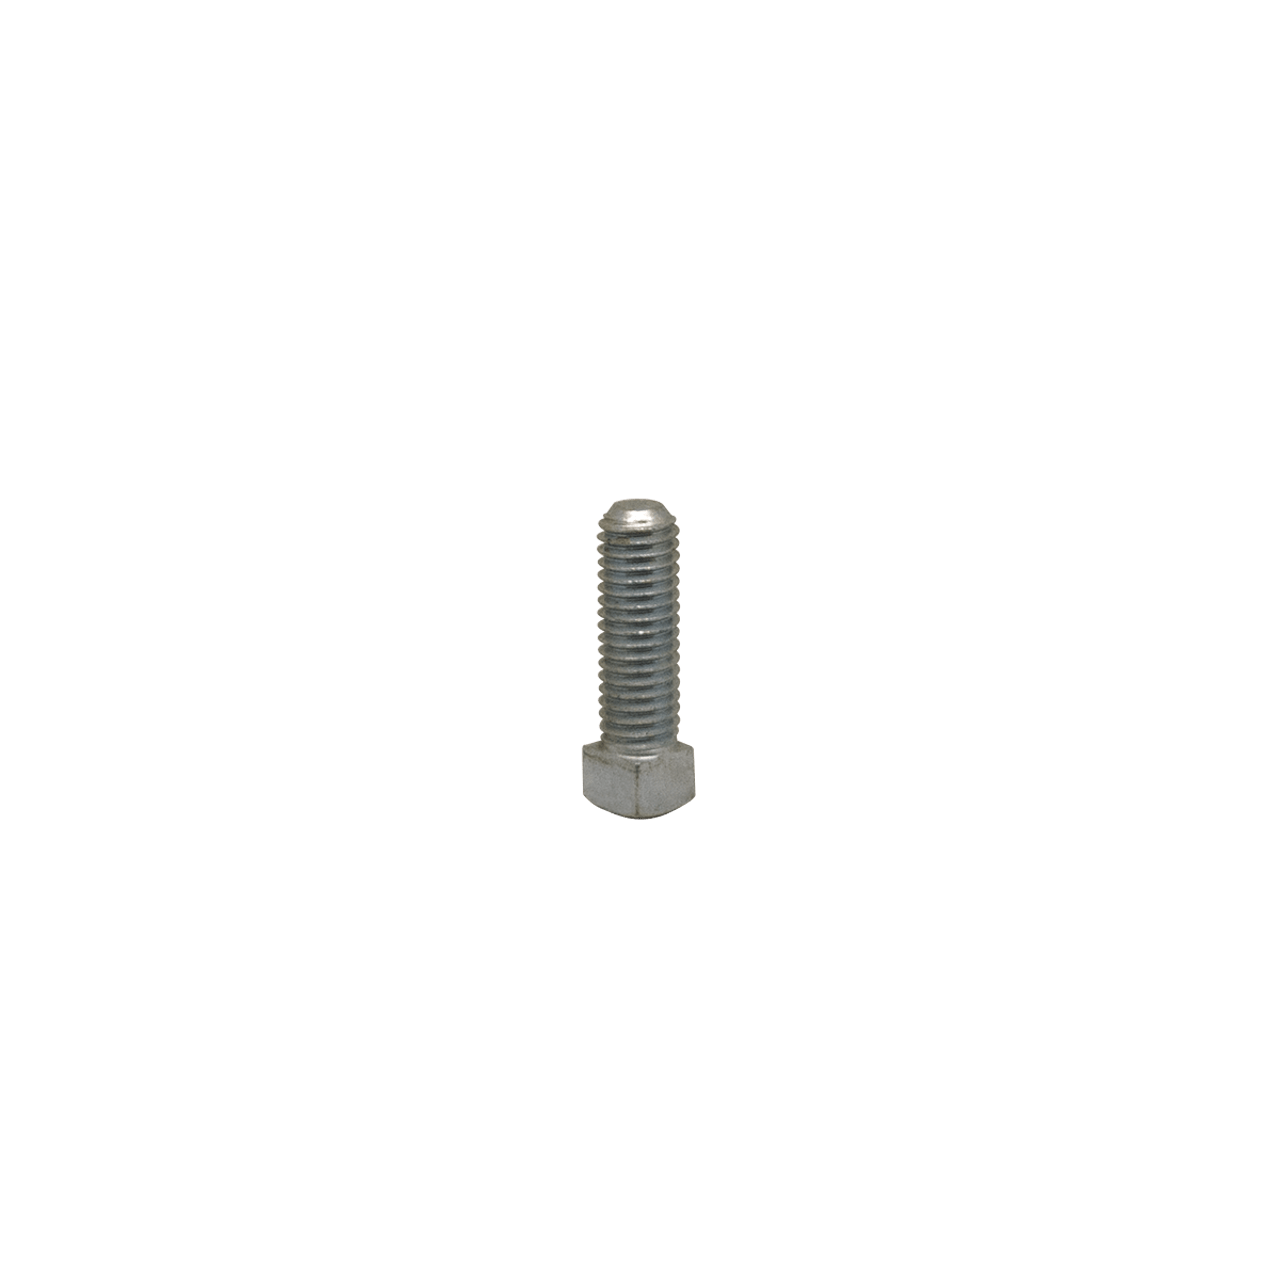 SS50 --- Set Screw with Square Head